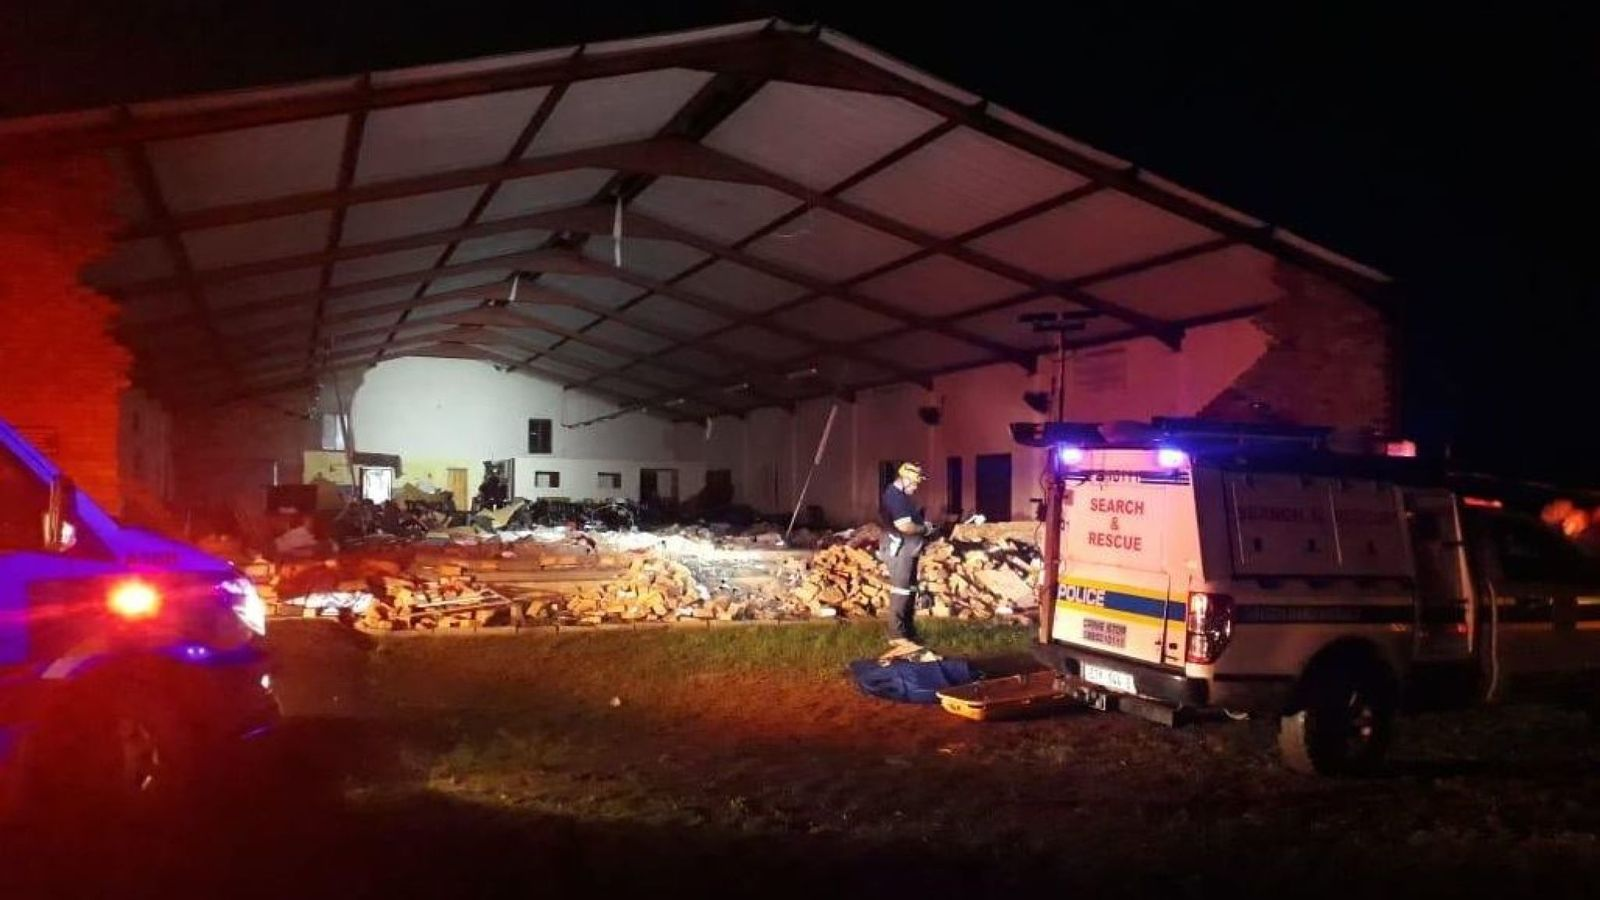 KZN CHURCH COLLAPSES: 13 Dead After Collapse At South Africa Church During Easter Service